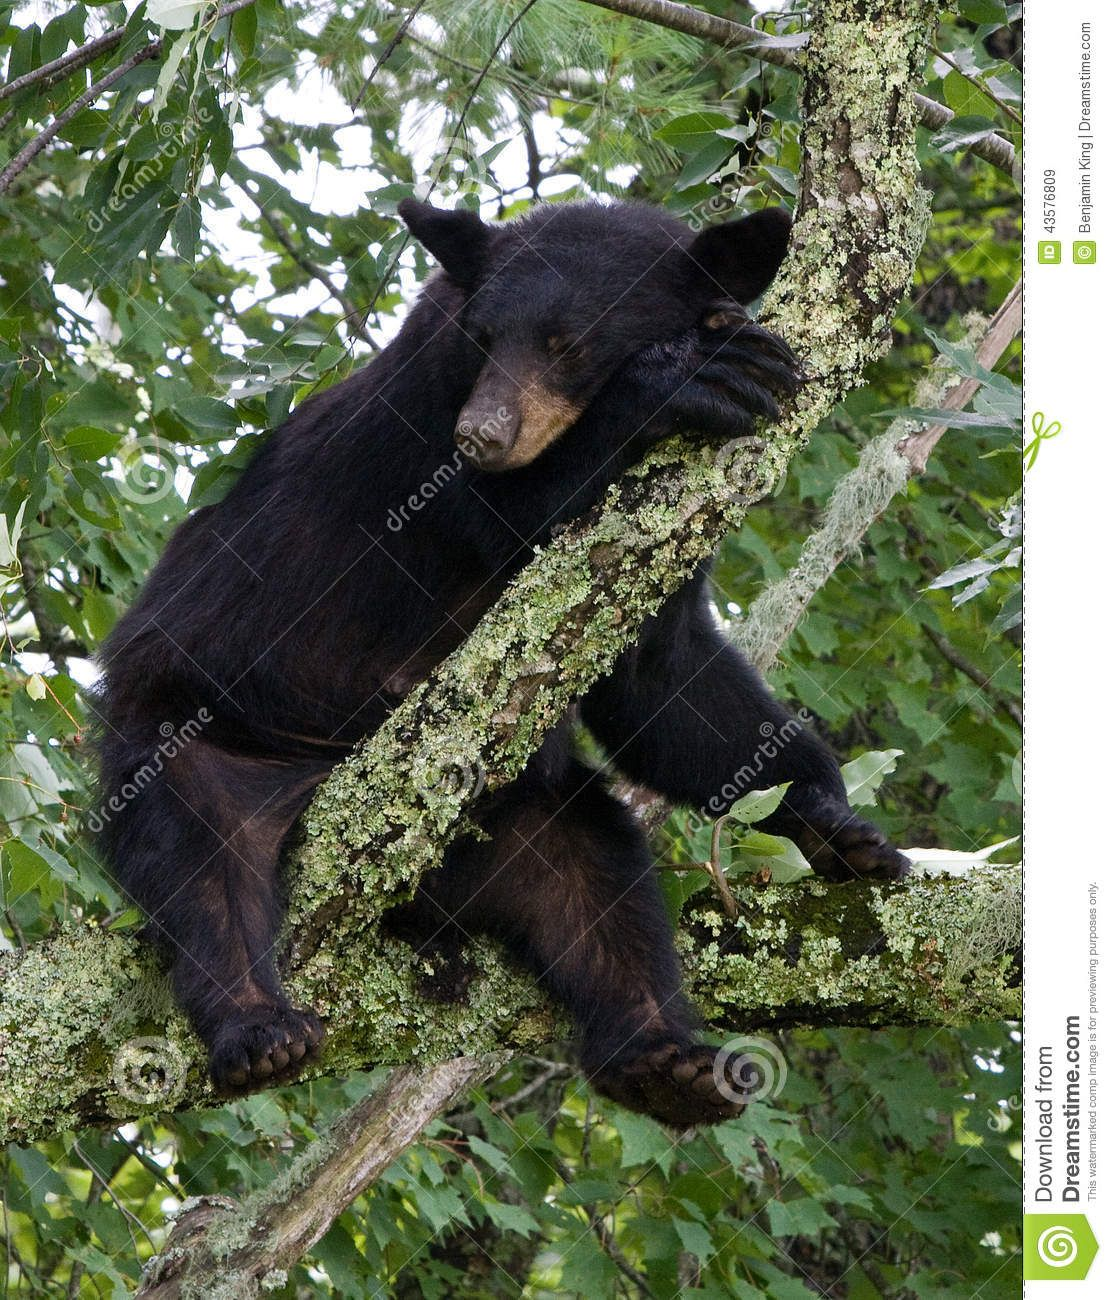 bear hanging from tree.